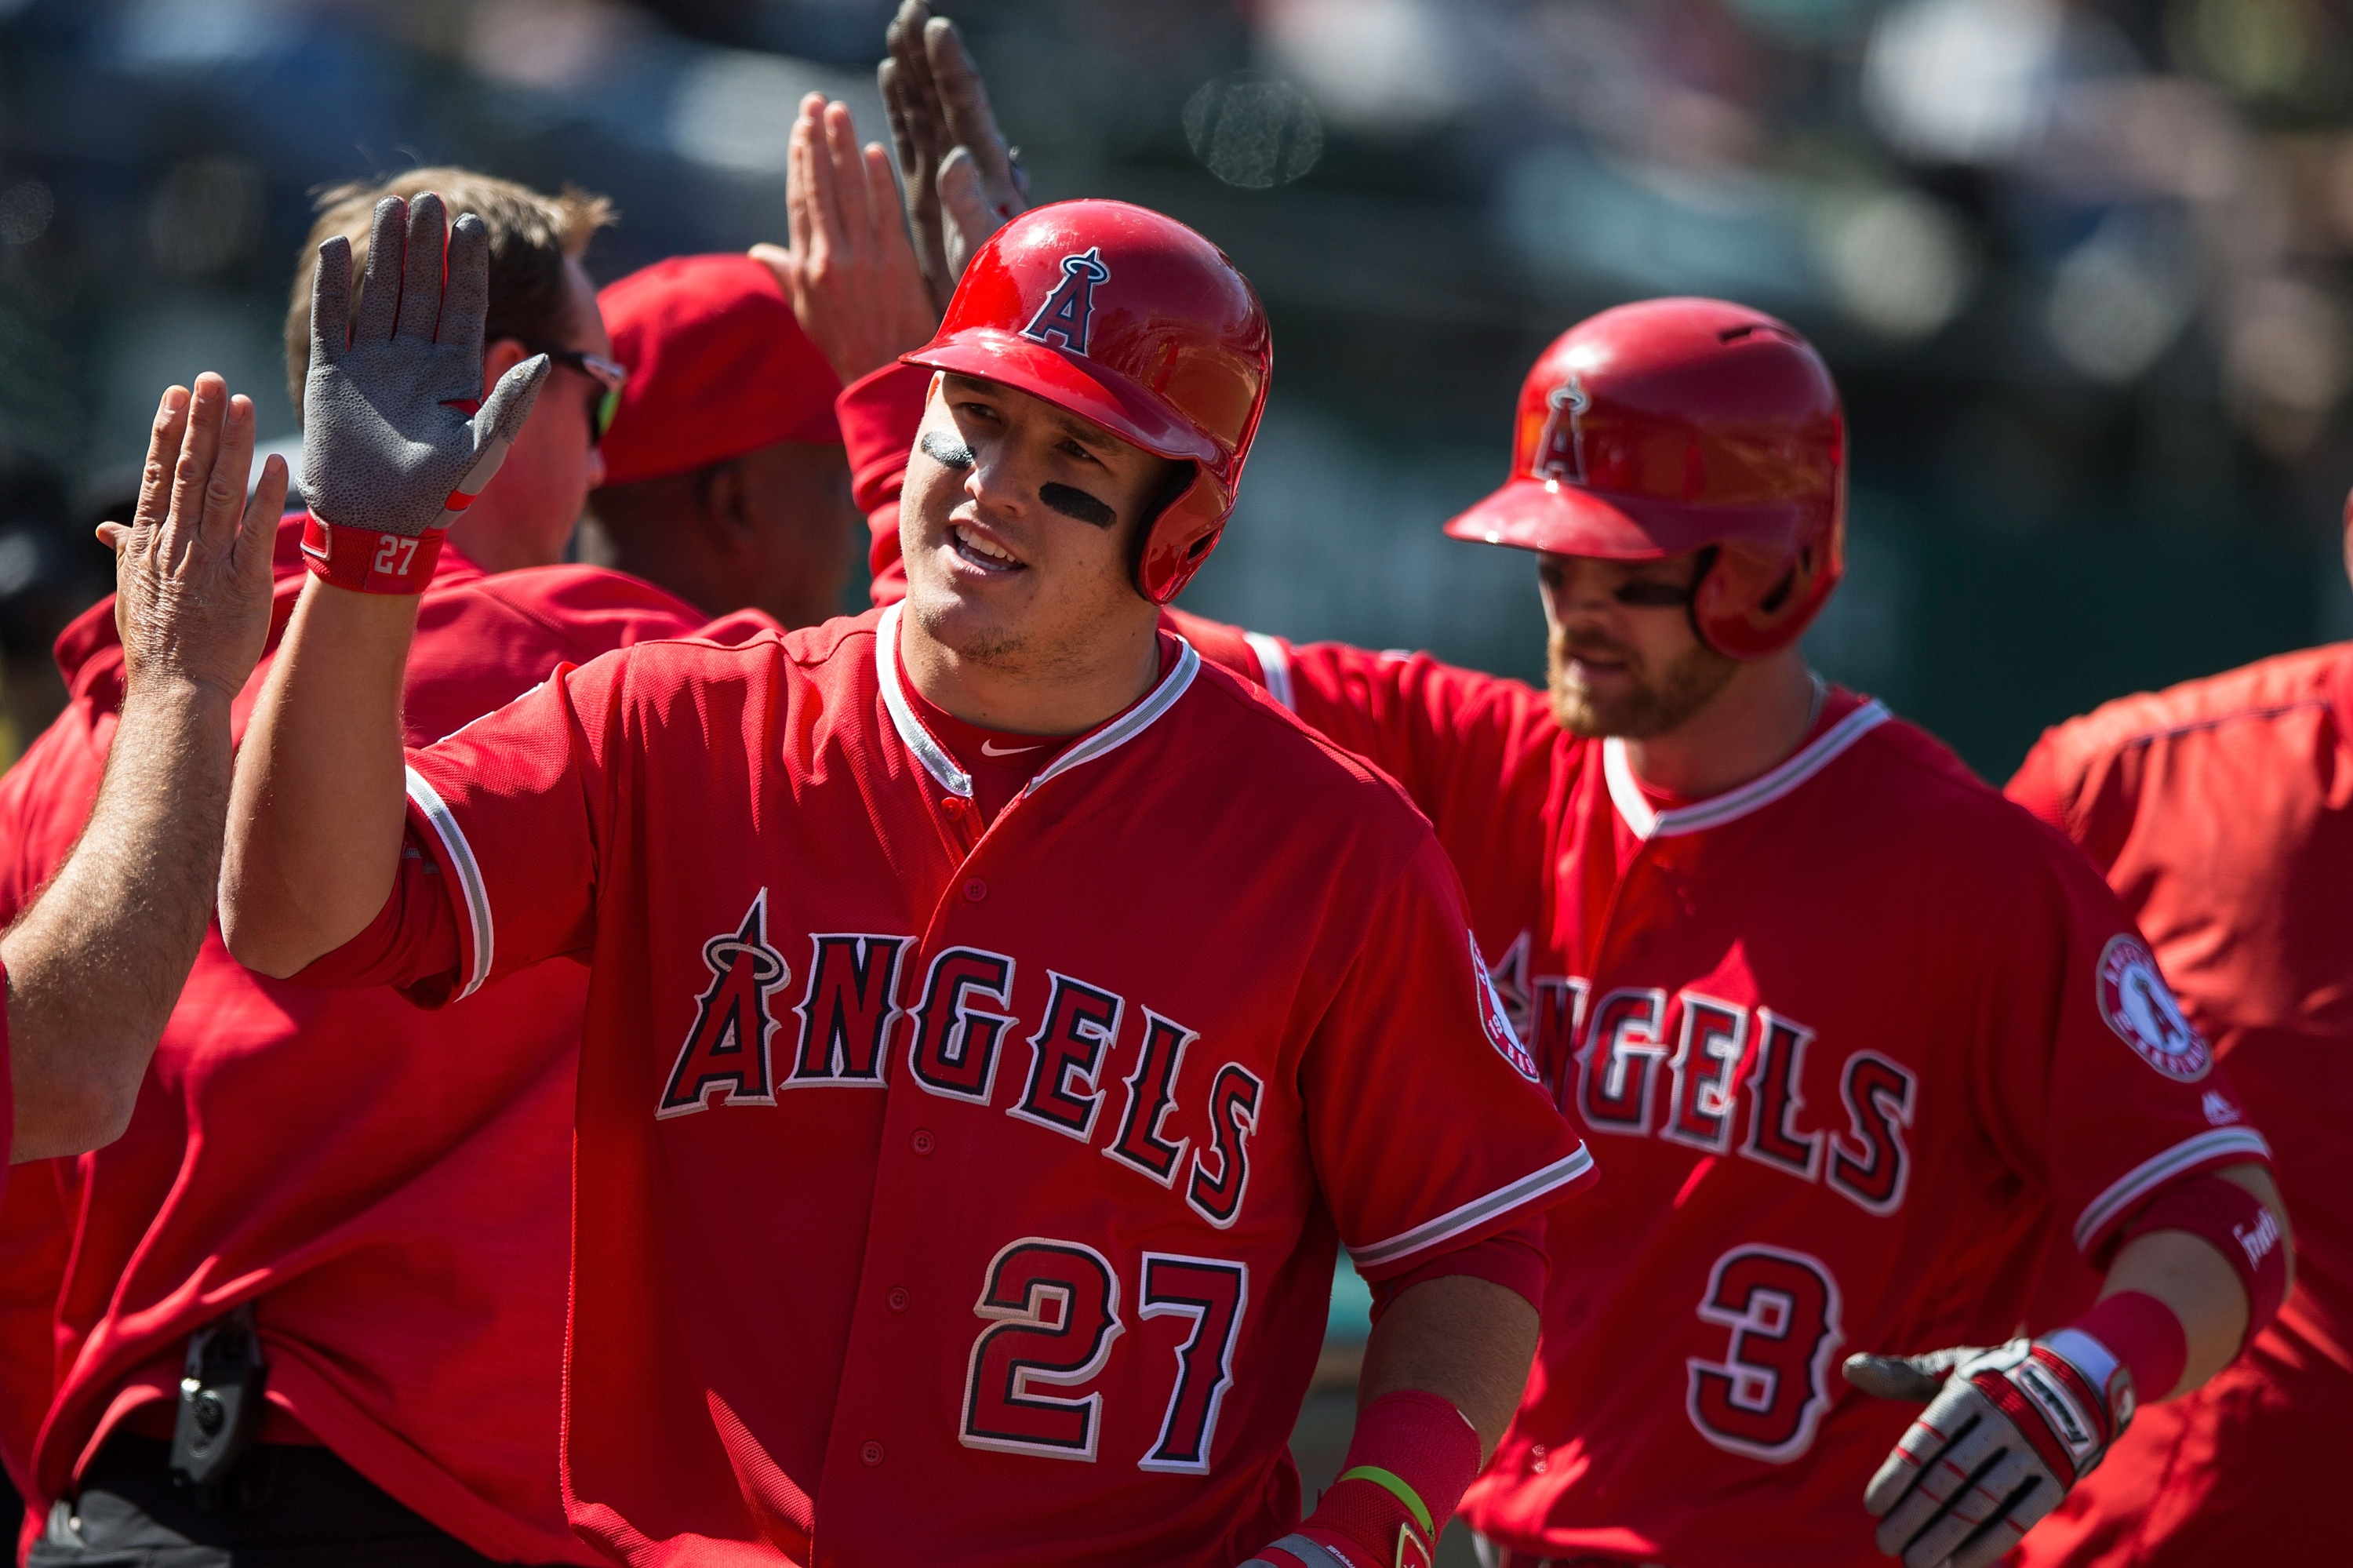 Mike Trout has taken on a second job in the Angels organization